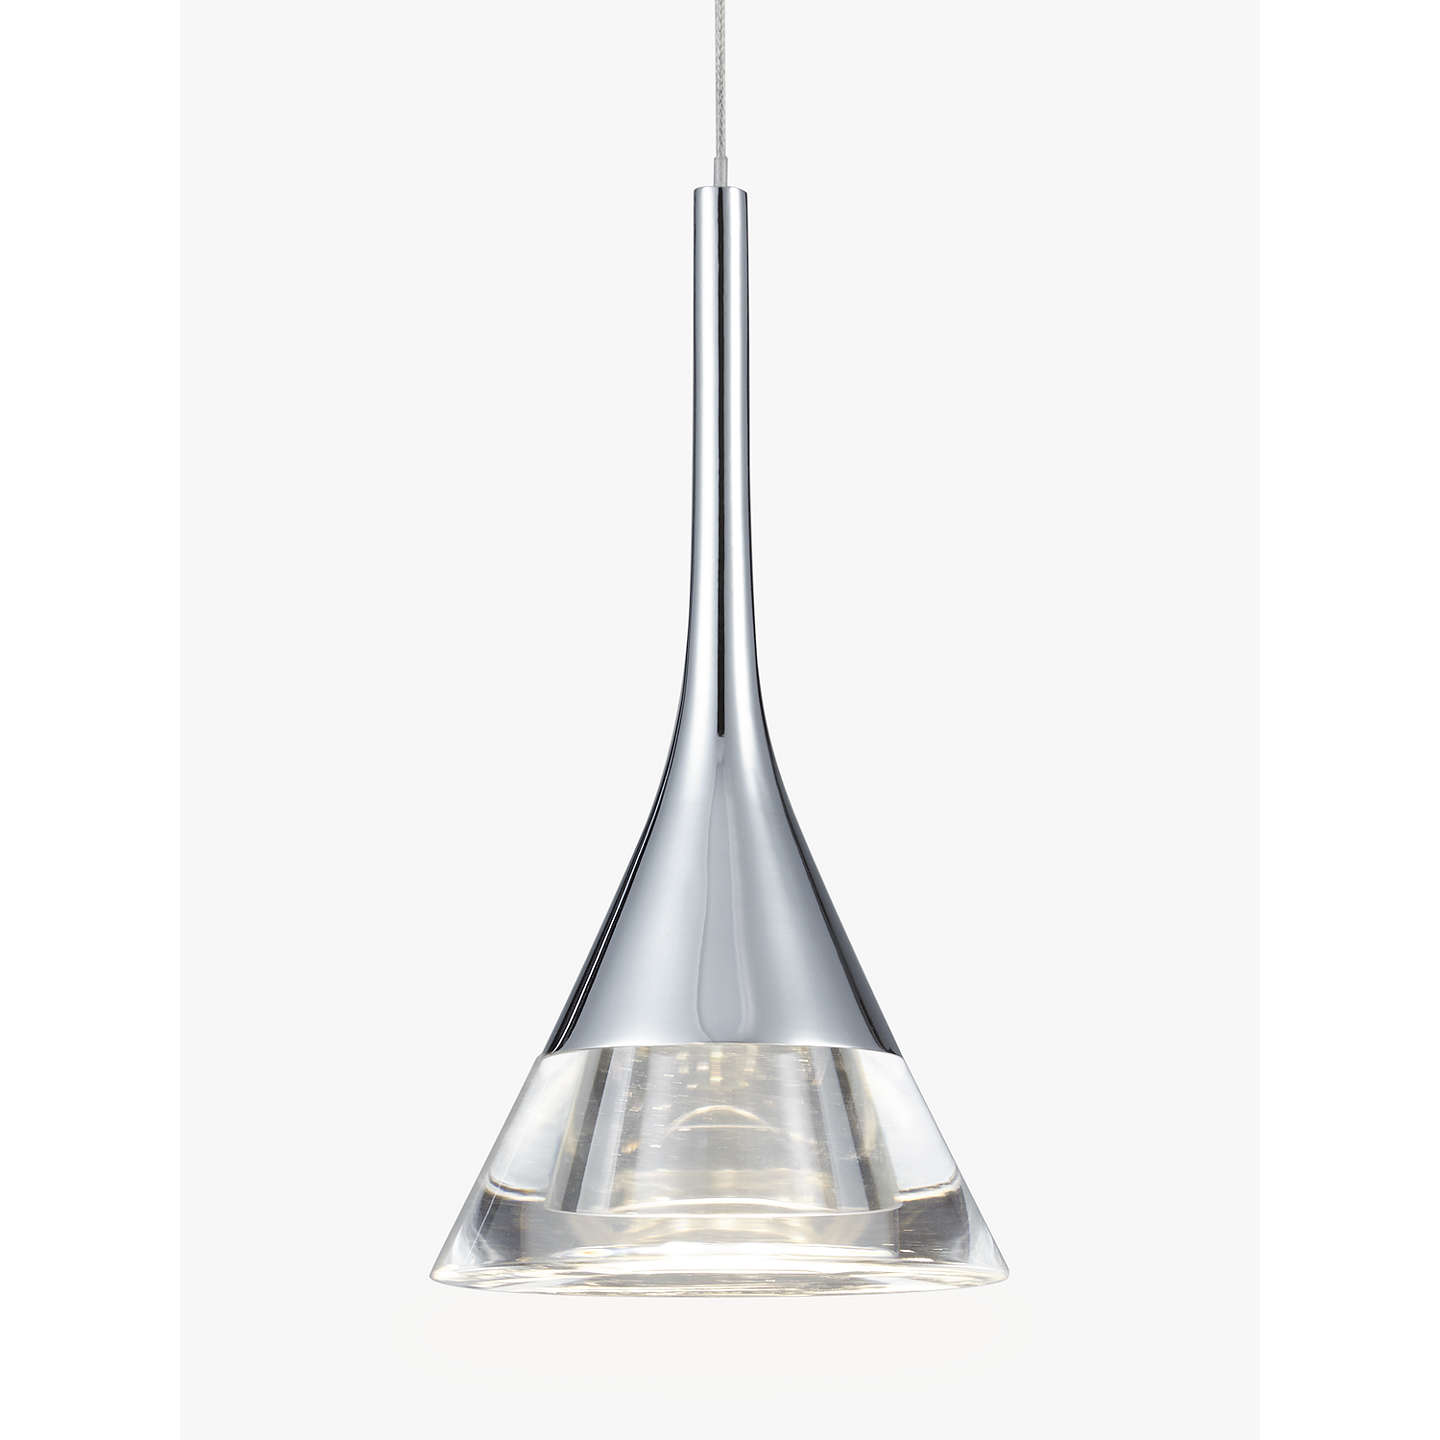 John lewis zion led cone single pendant ceiling light clearchrome buyjohn lewis zion led cone single pendant ceiling light clearchrome online at johnlewis aloadofball Image collections